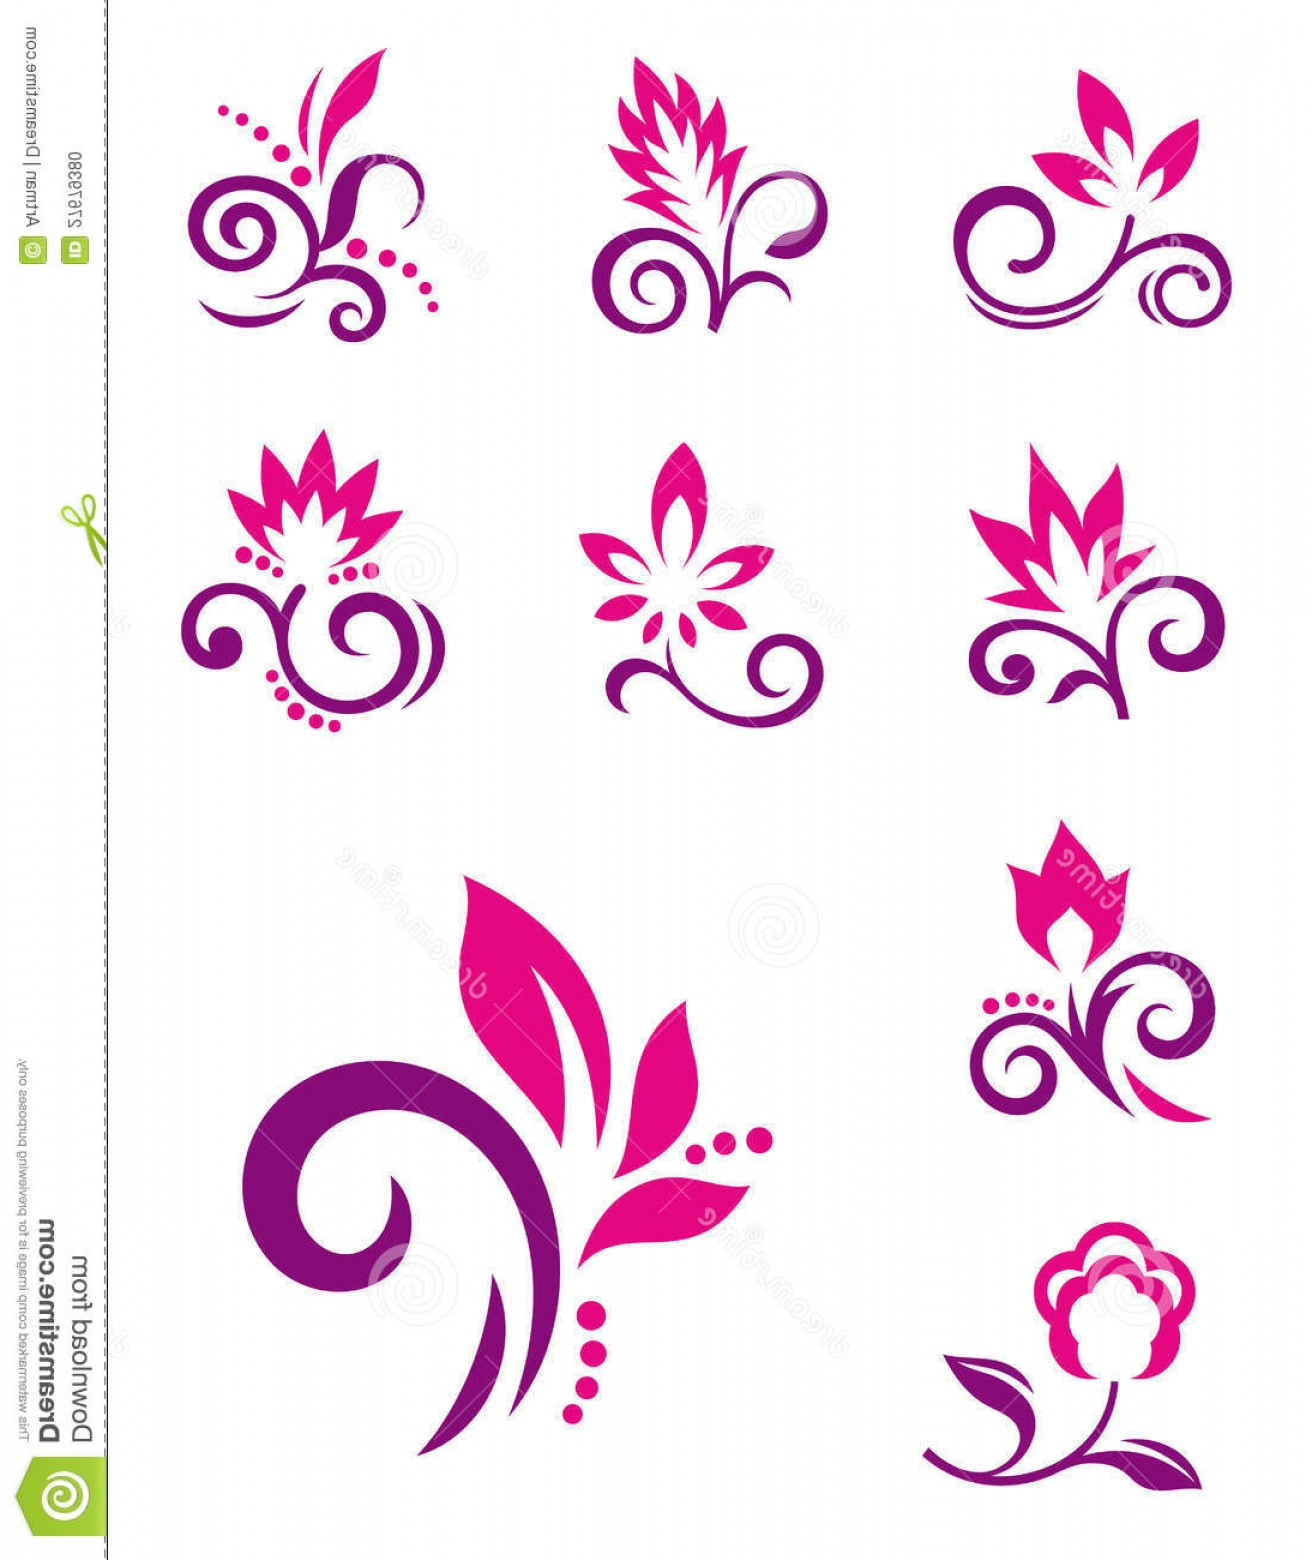 Floral Vector Icon: Stock Photo Floral Design Elements Vector Flower Icons Image